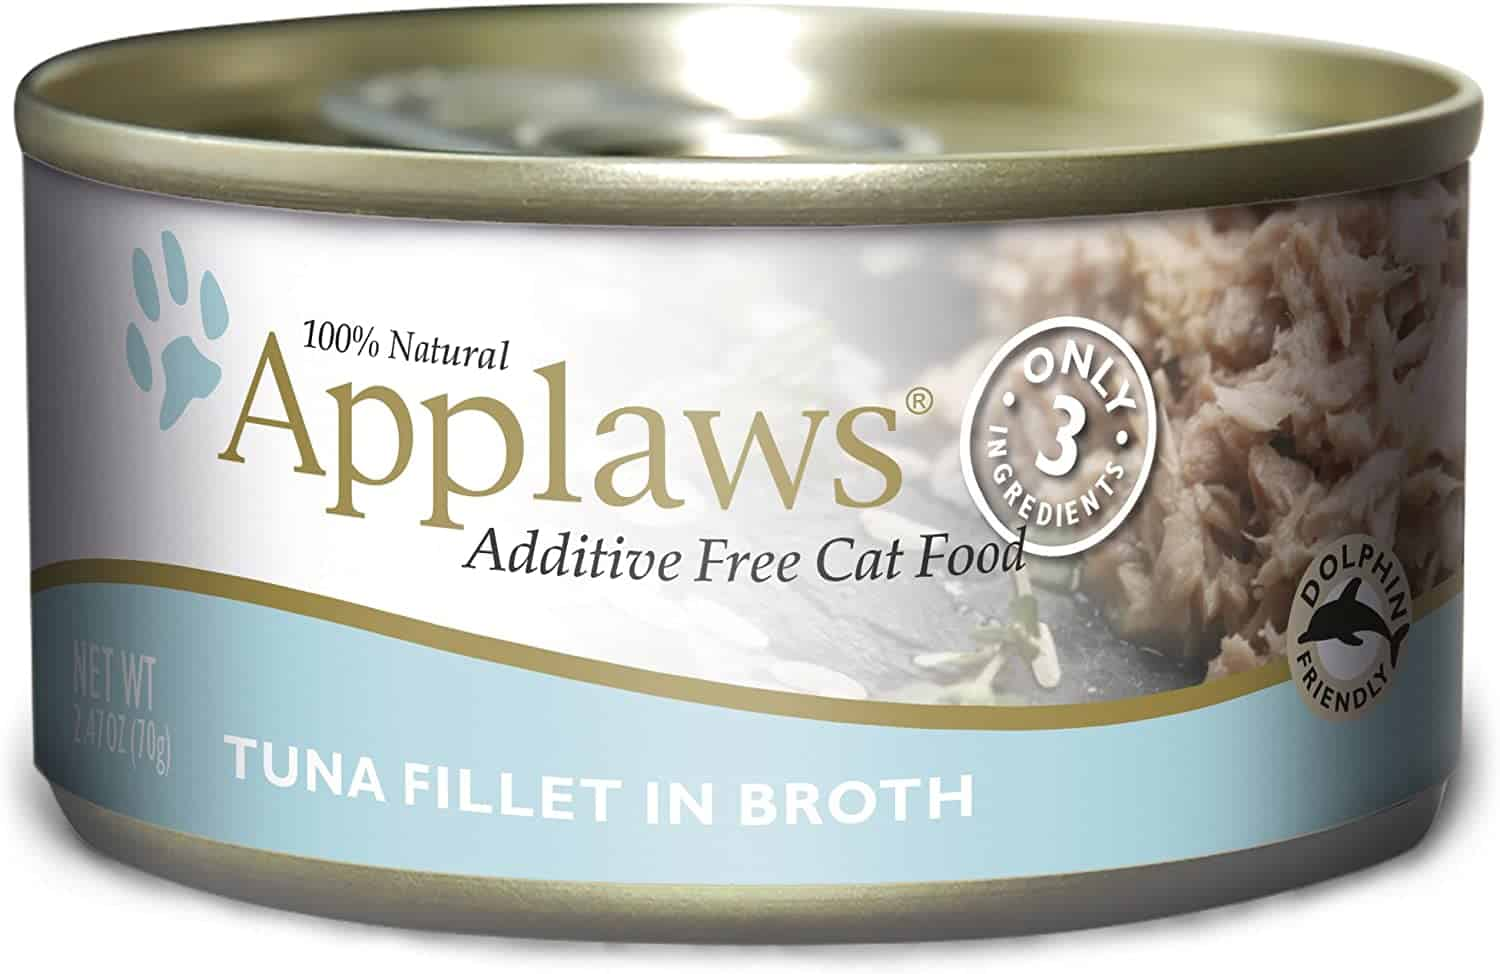 2020 Applaws Cat Food Review: Naturally Nutritious Cat Food 5